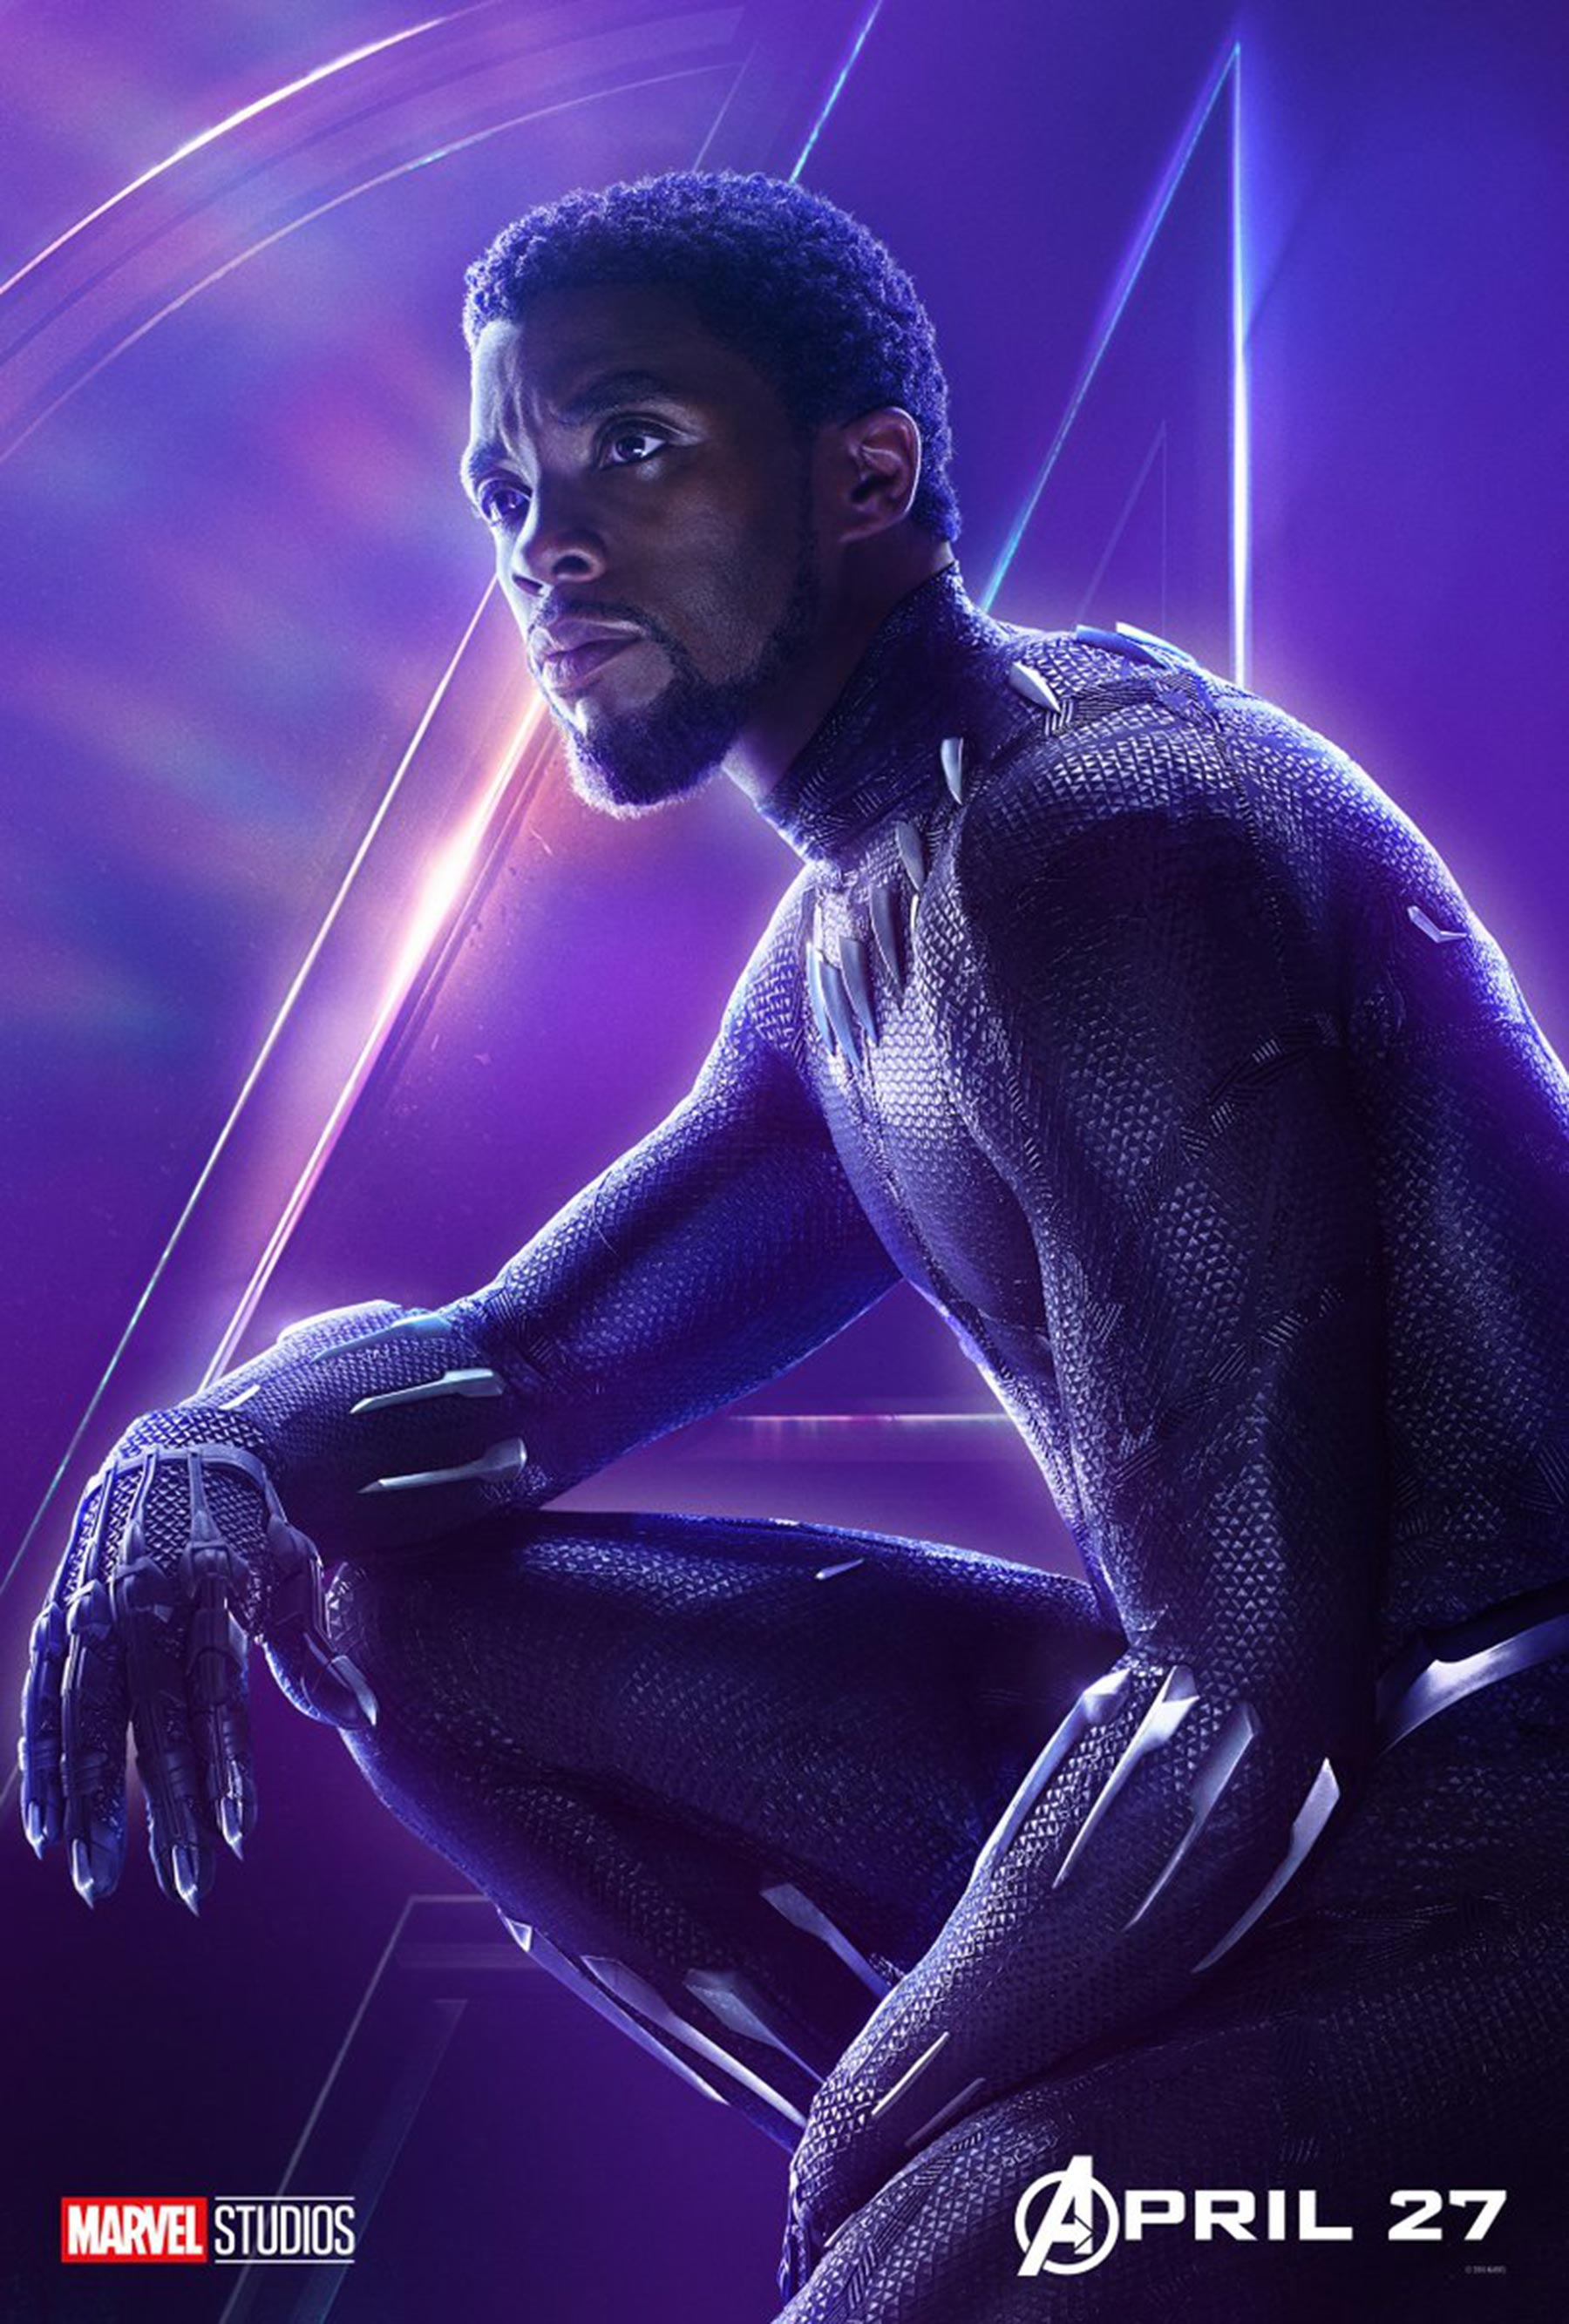 Marvel Drops 21 New Avengers Infinity War Character Posters